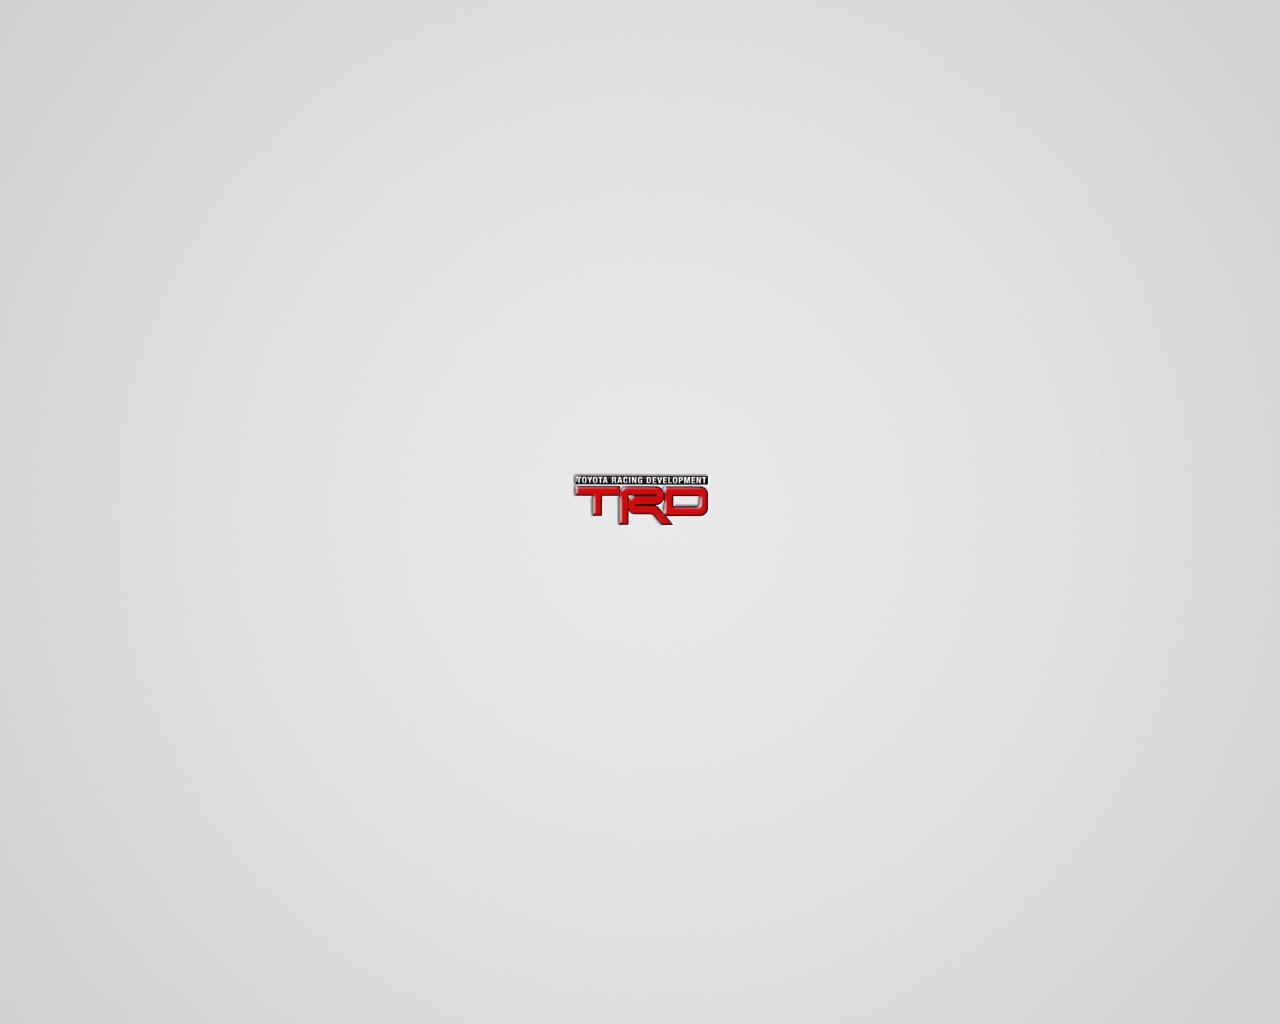 trd minimalist by sirsuds customization wallpaper minimalistic 2003 1280x1024